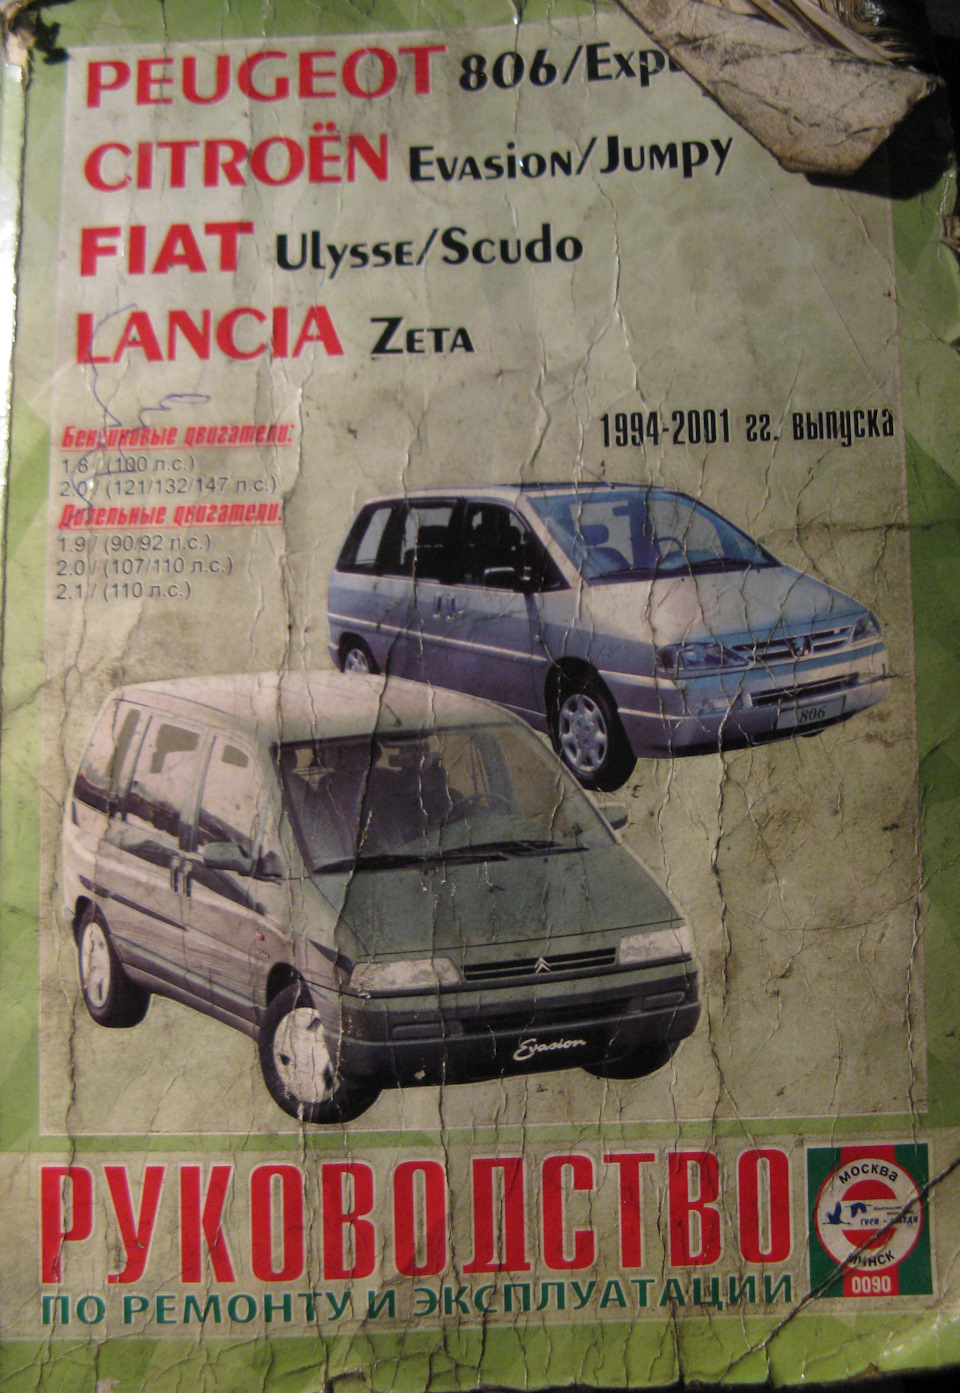 And then the manual for operation and repair of the Citroën, Peugeot, Fiat,  and Lancia accidentally turned ...